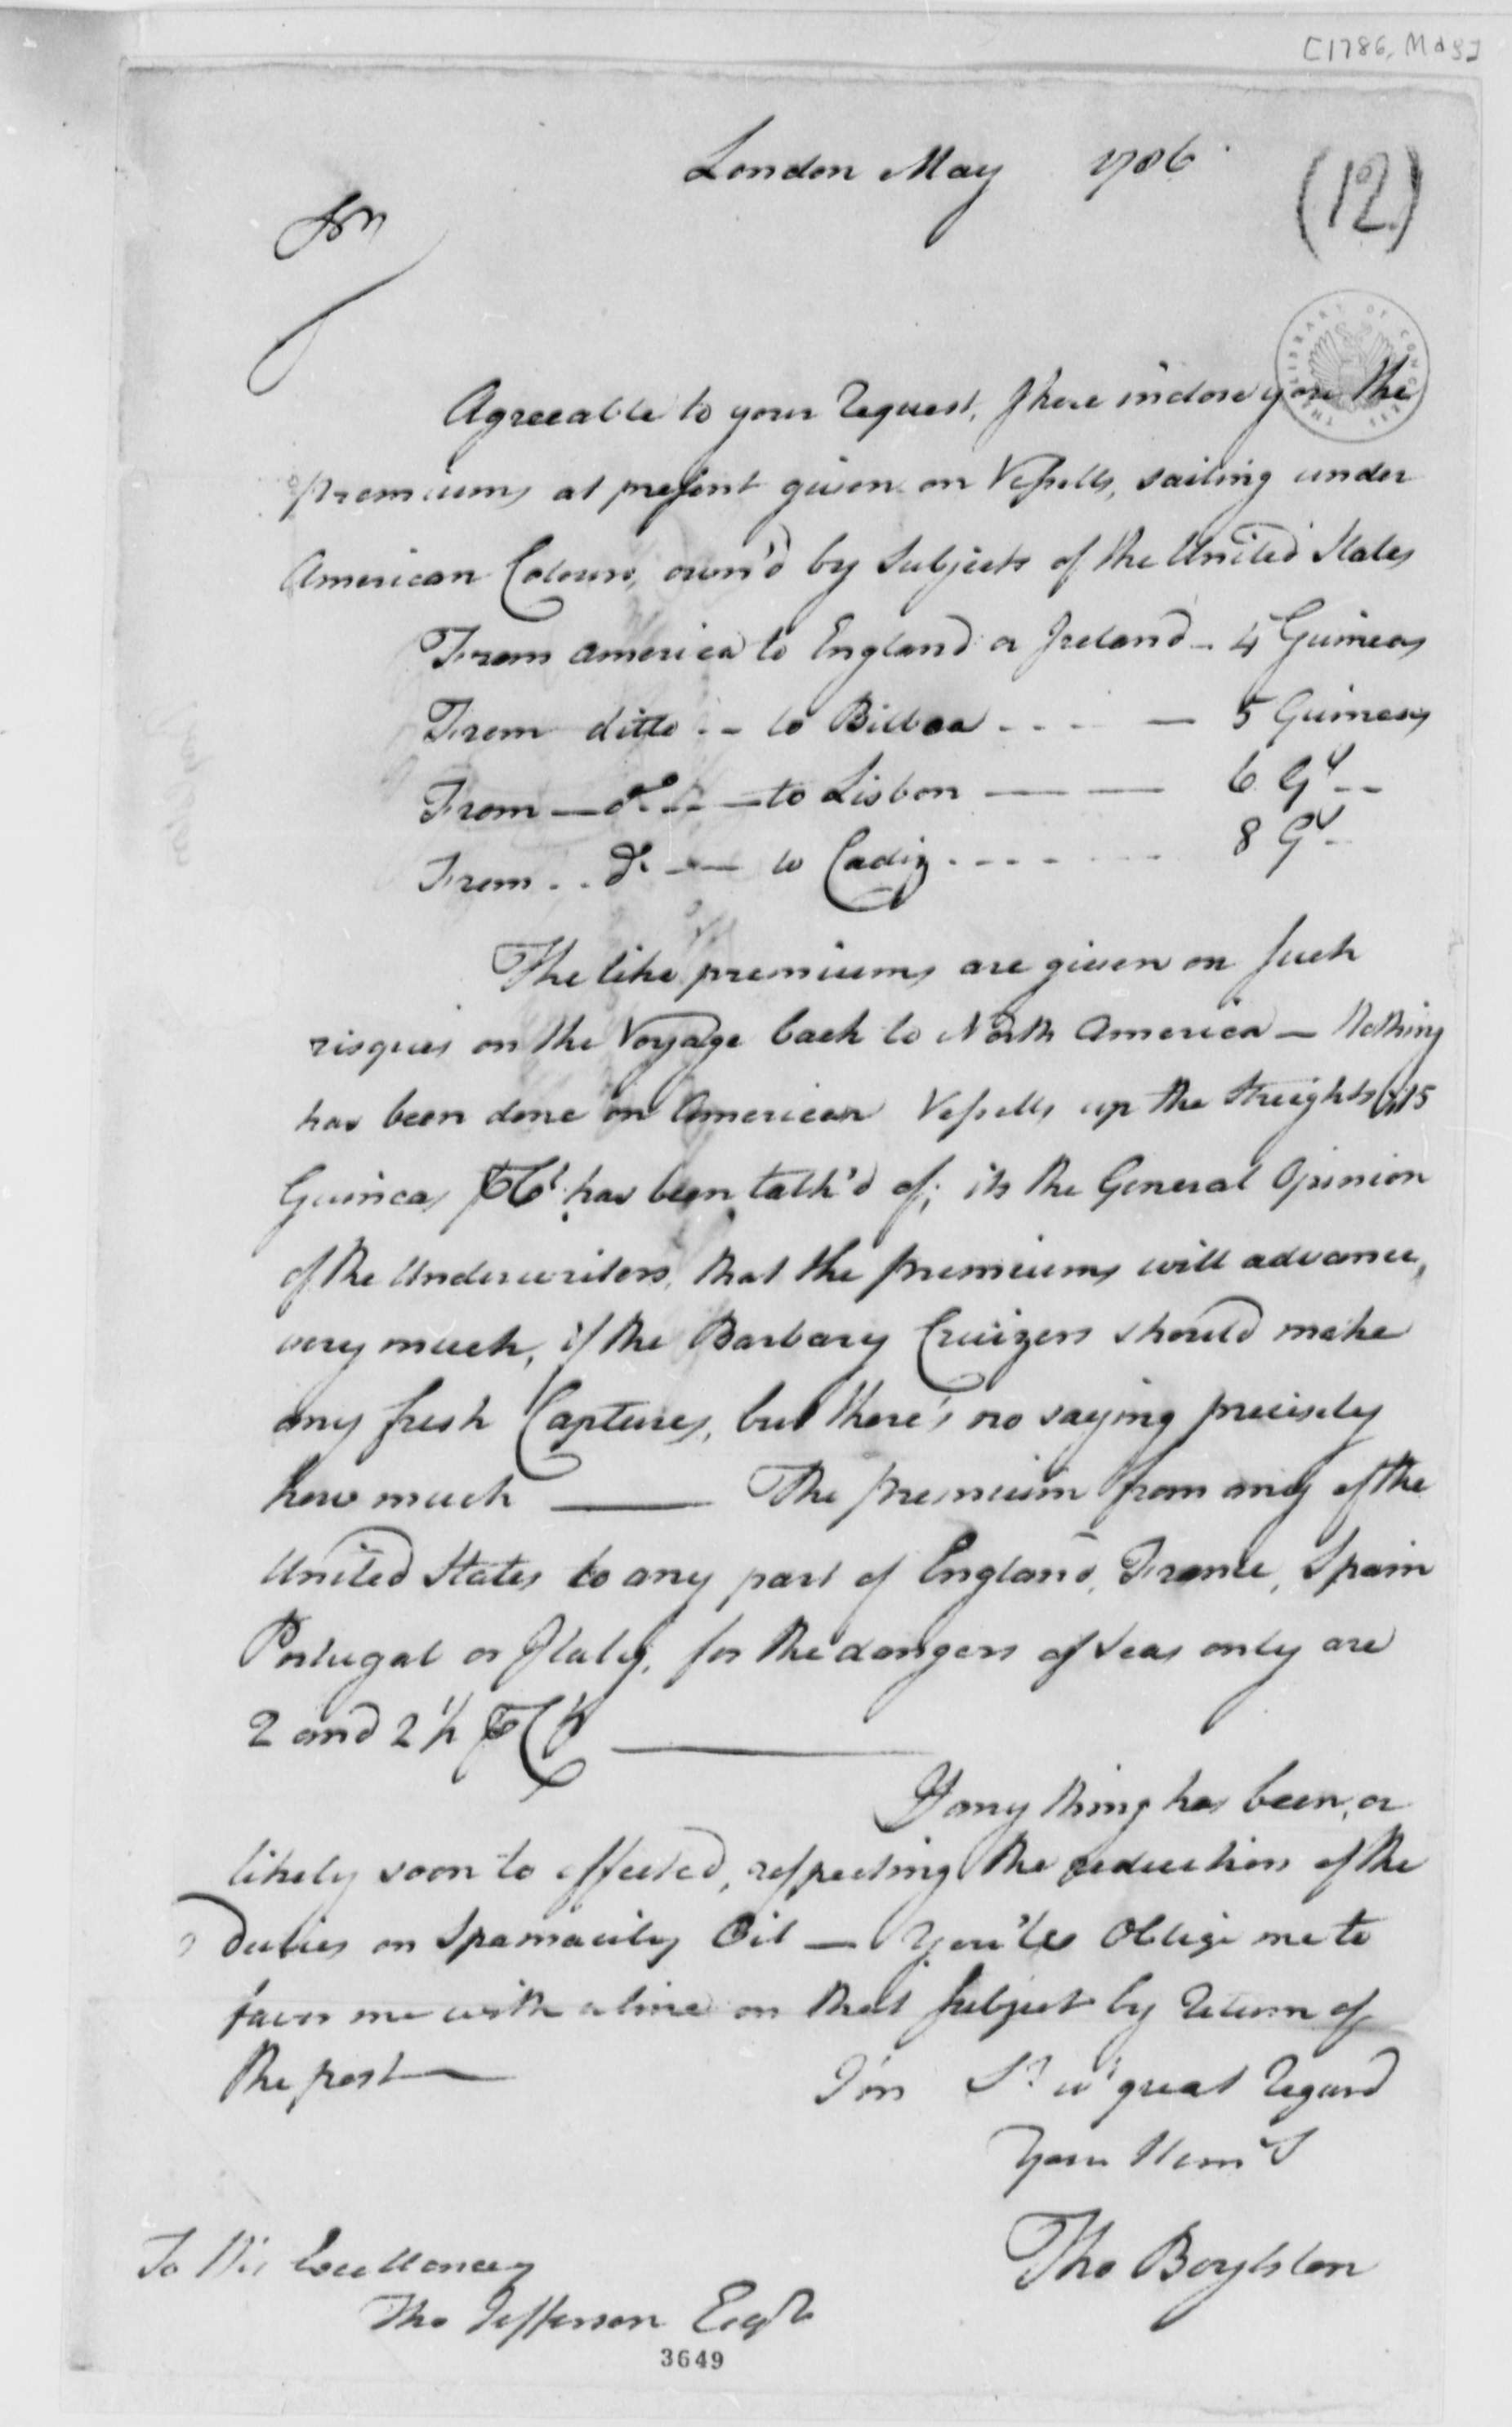 A sample insurance contract. Documents such as this helped traders survive losses.